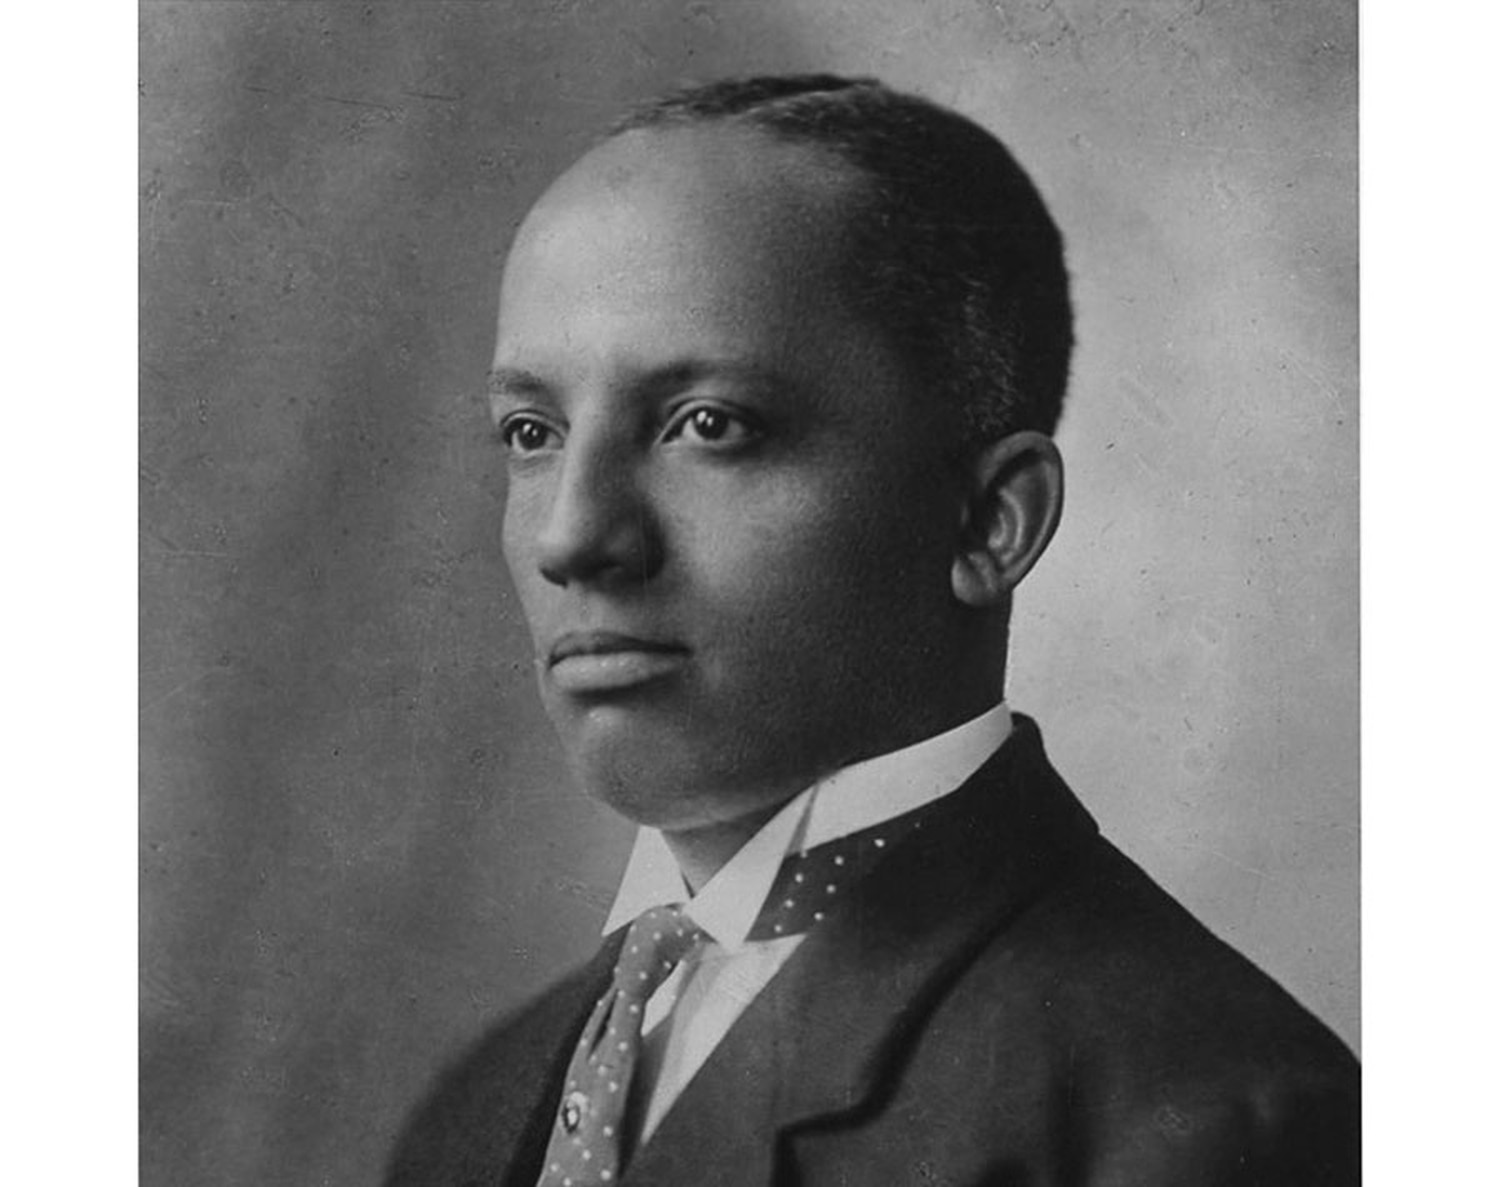 Dr. Carter G. Woodson first conceived of Negro History Week in 1926. In 1976, America adopted Black History Month.